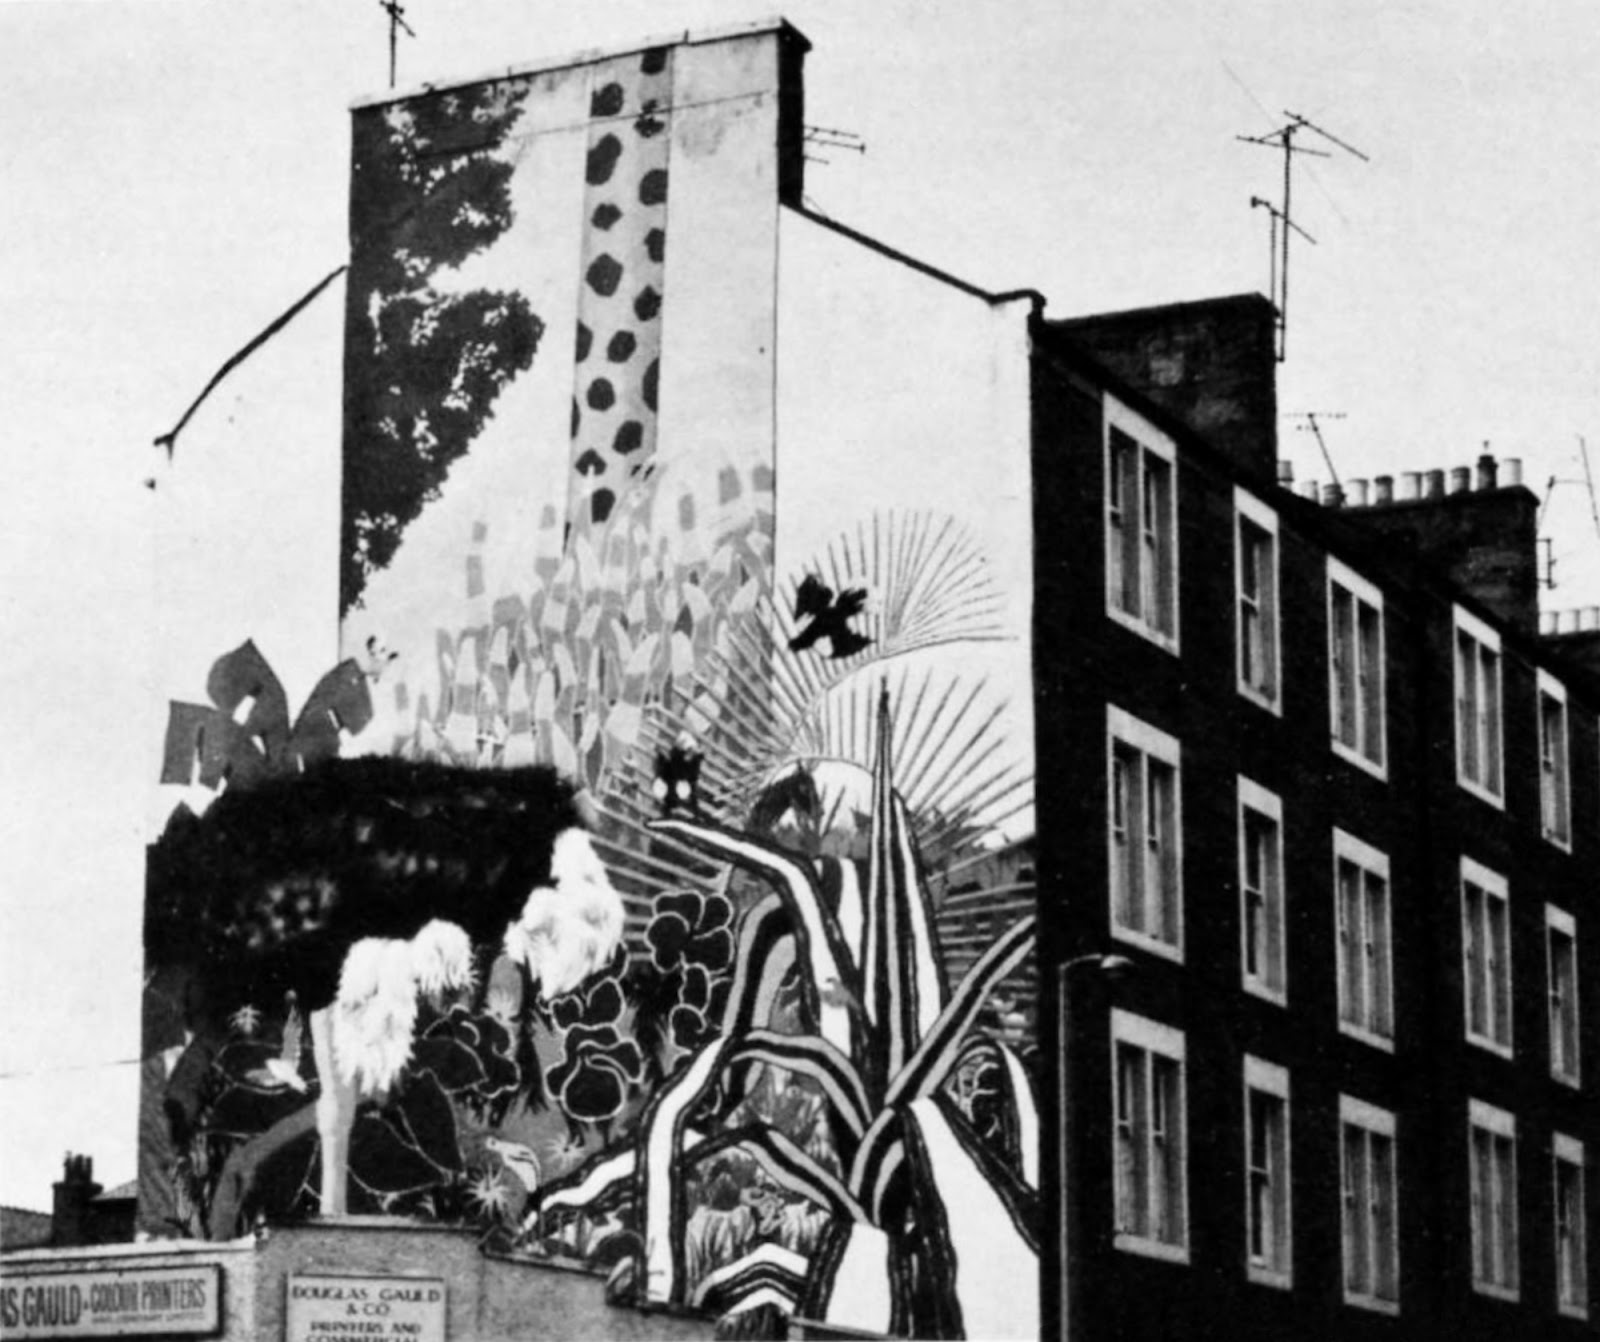 Retro dundee wolseley street mural 1970 39 s for Telephone mural 1970